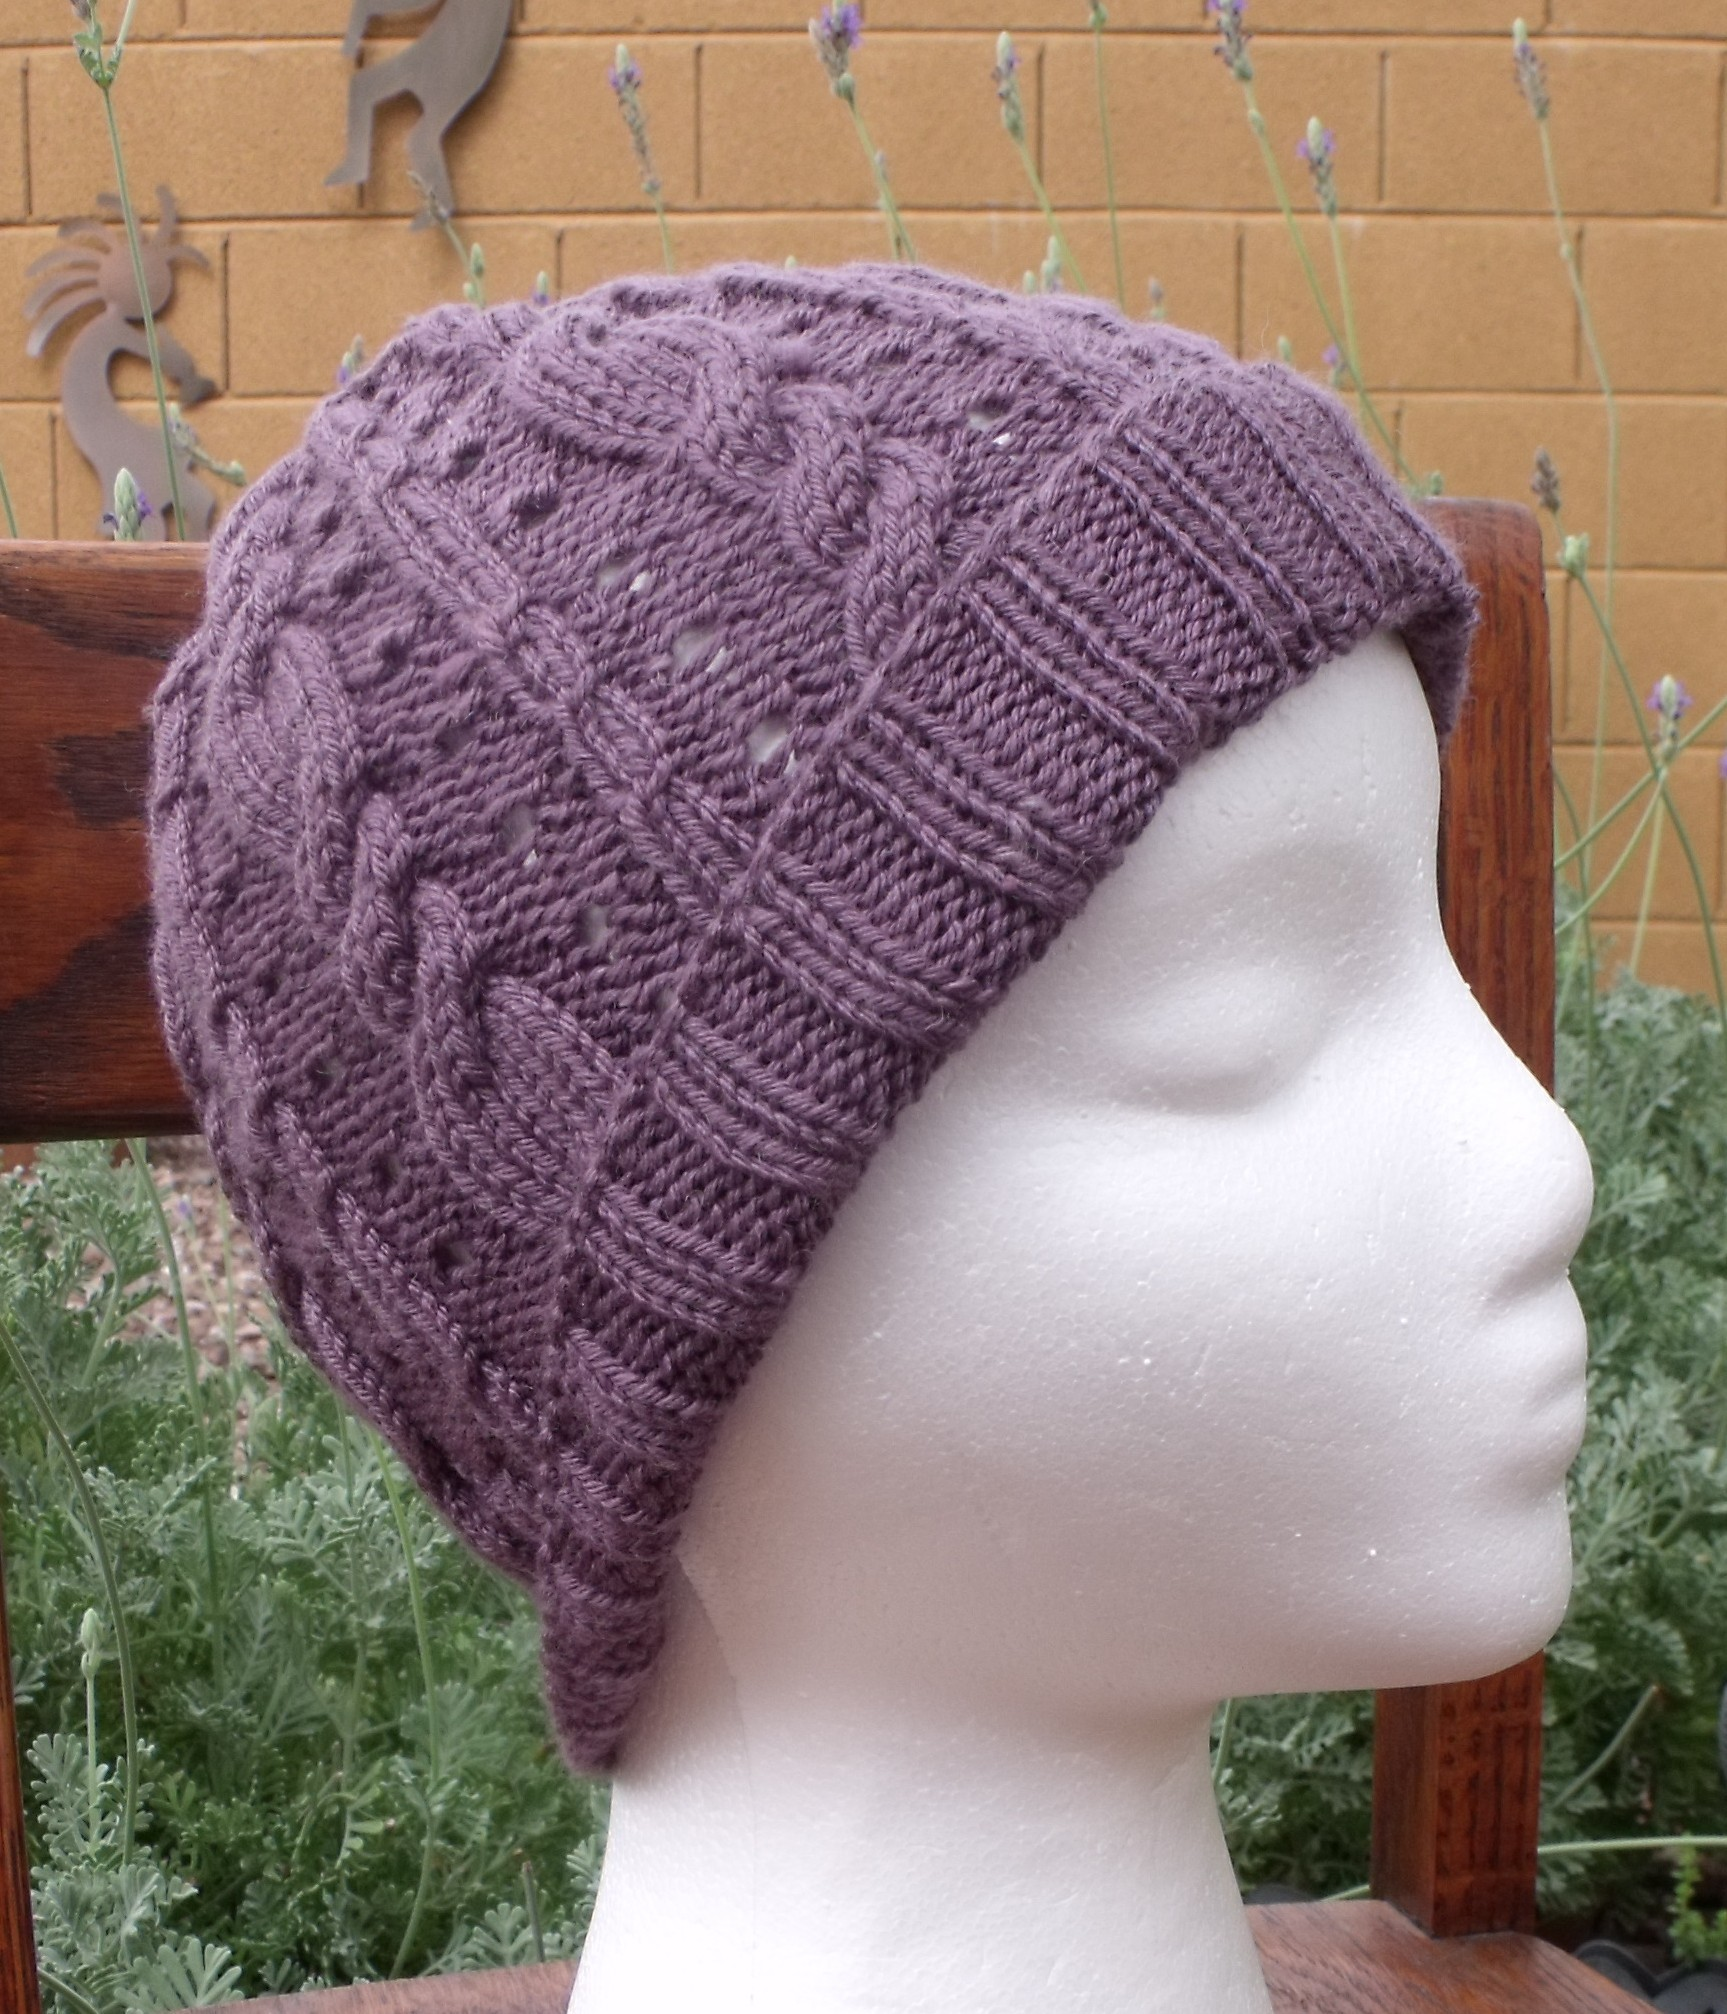 Knitting Cable Patterns Free : Knitting Patterns Free Hats images